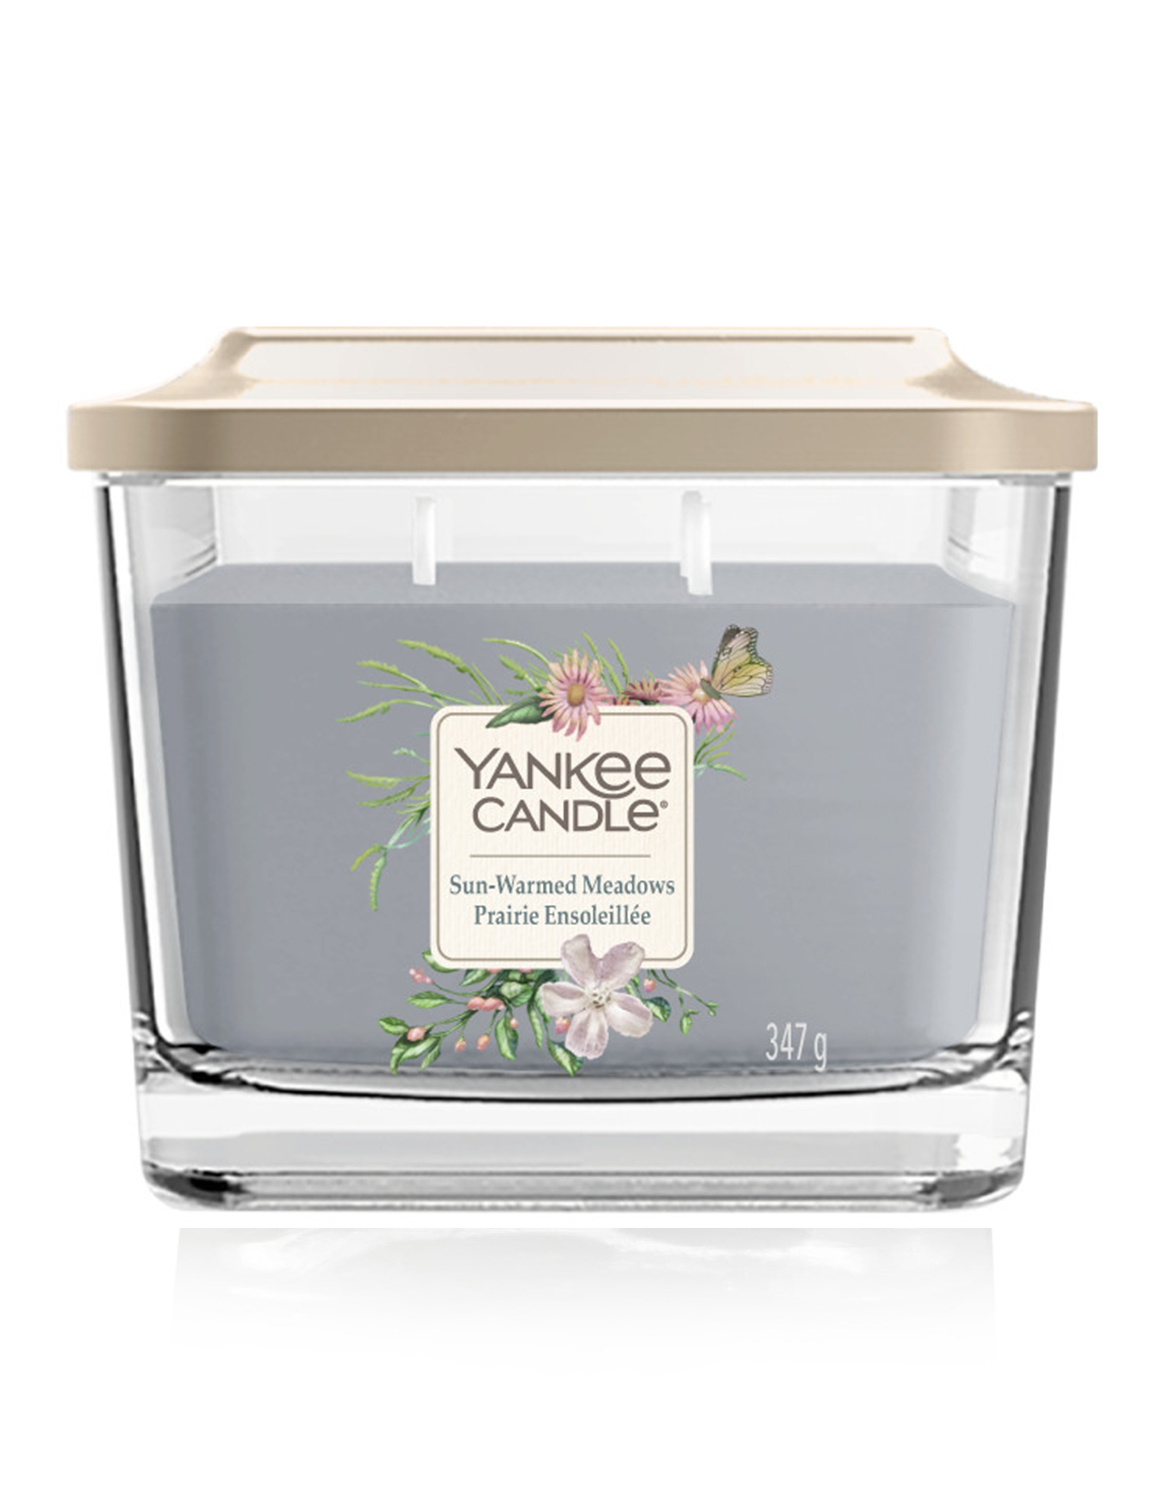 Yankee Candle fragrant candle Elevation sun-warmed meadows medium square 3 wicks